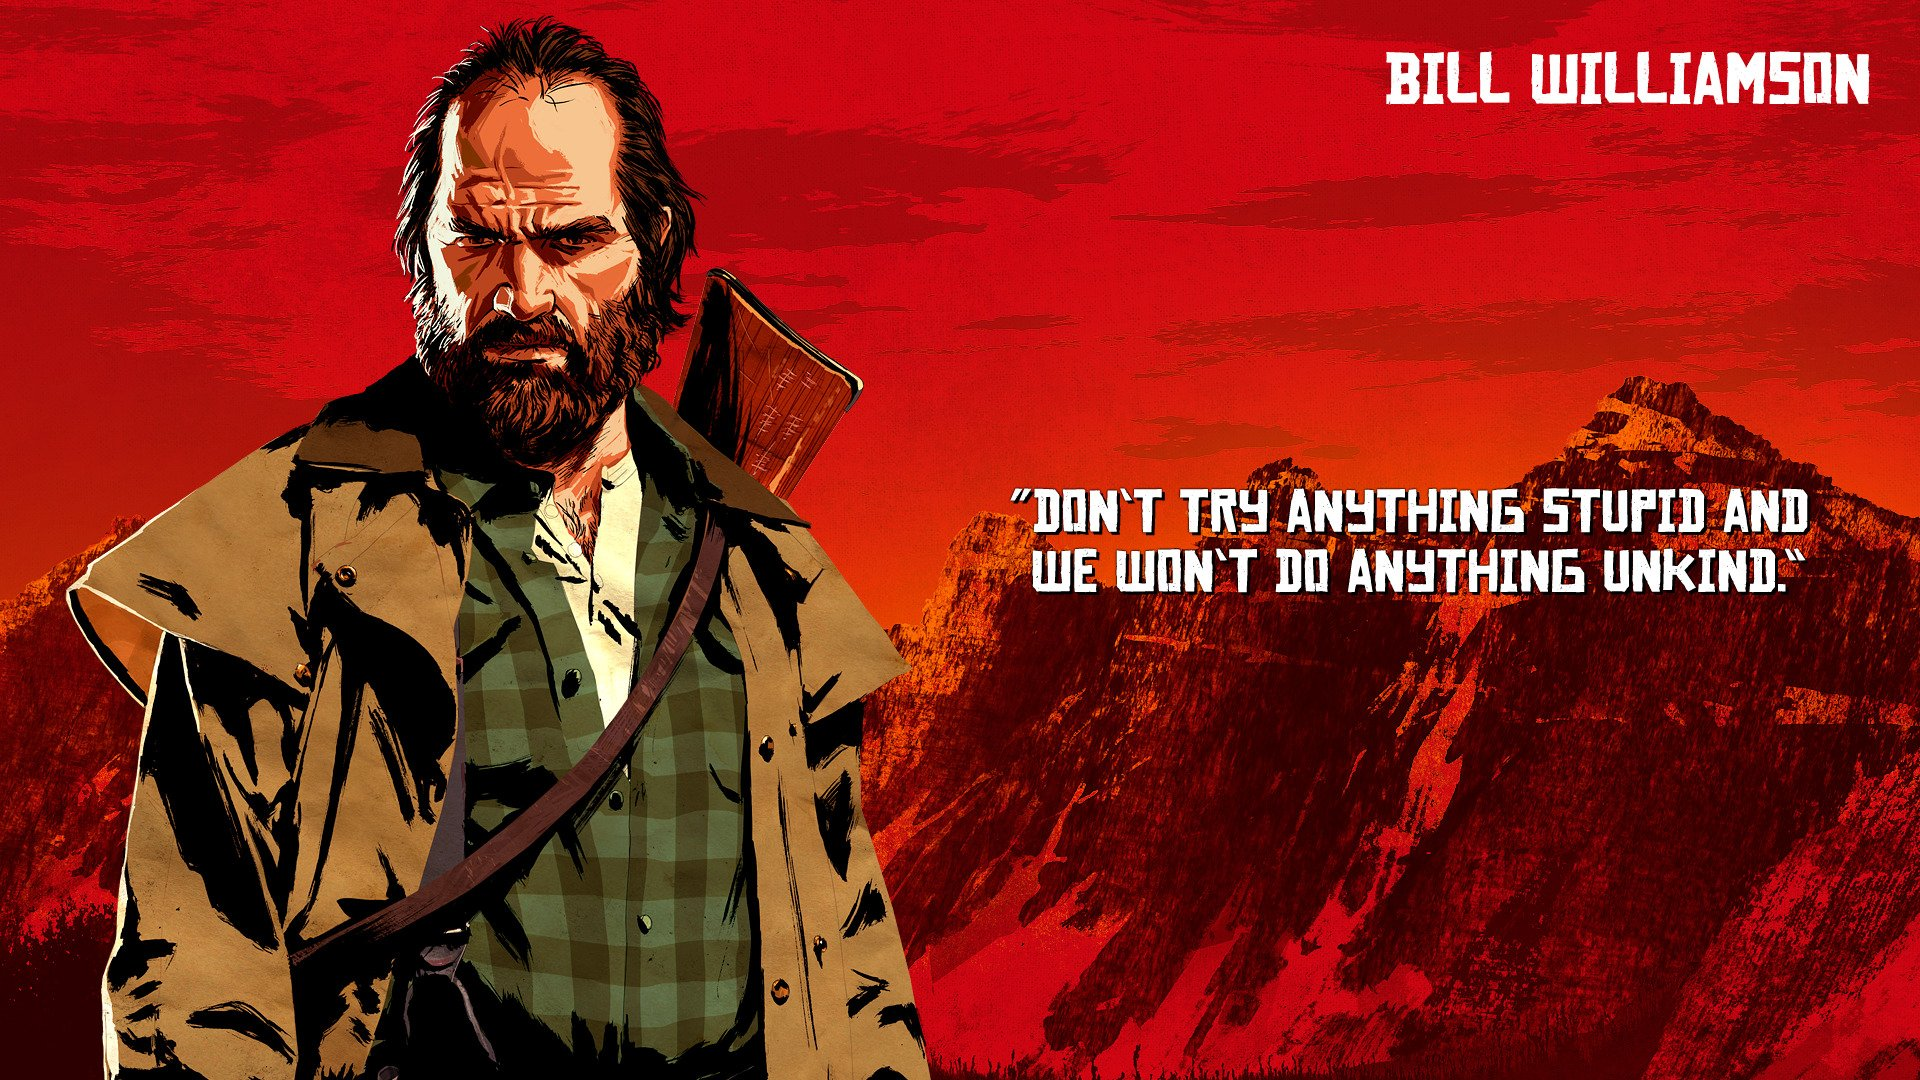 New Digital Art for Red Dead Redemption 2 Features Quotes